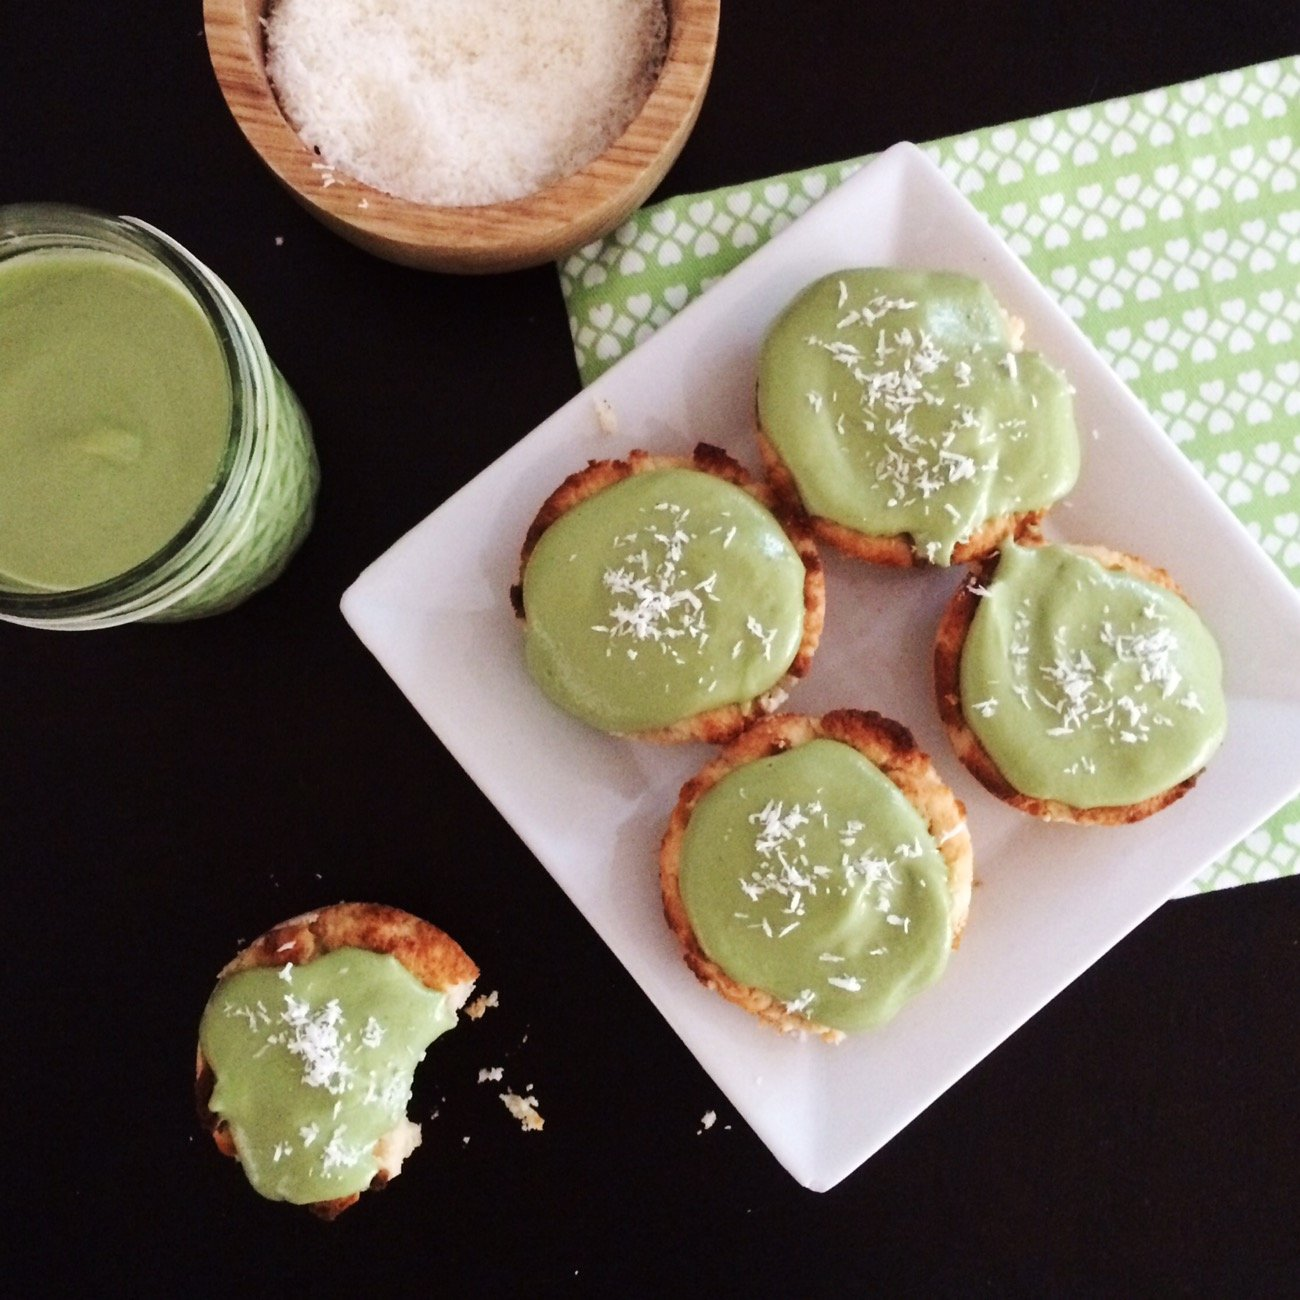 Low Carb Vegan Cupcakes - Matcha Coconut | These gluten free, vegan cupcakes are sugar free, keto friendly and super delicious!